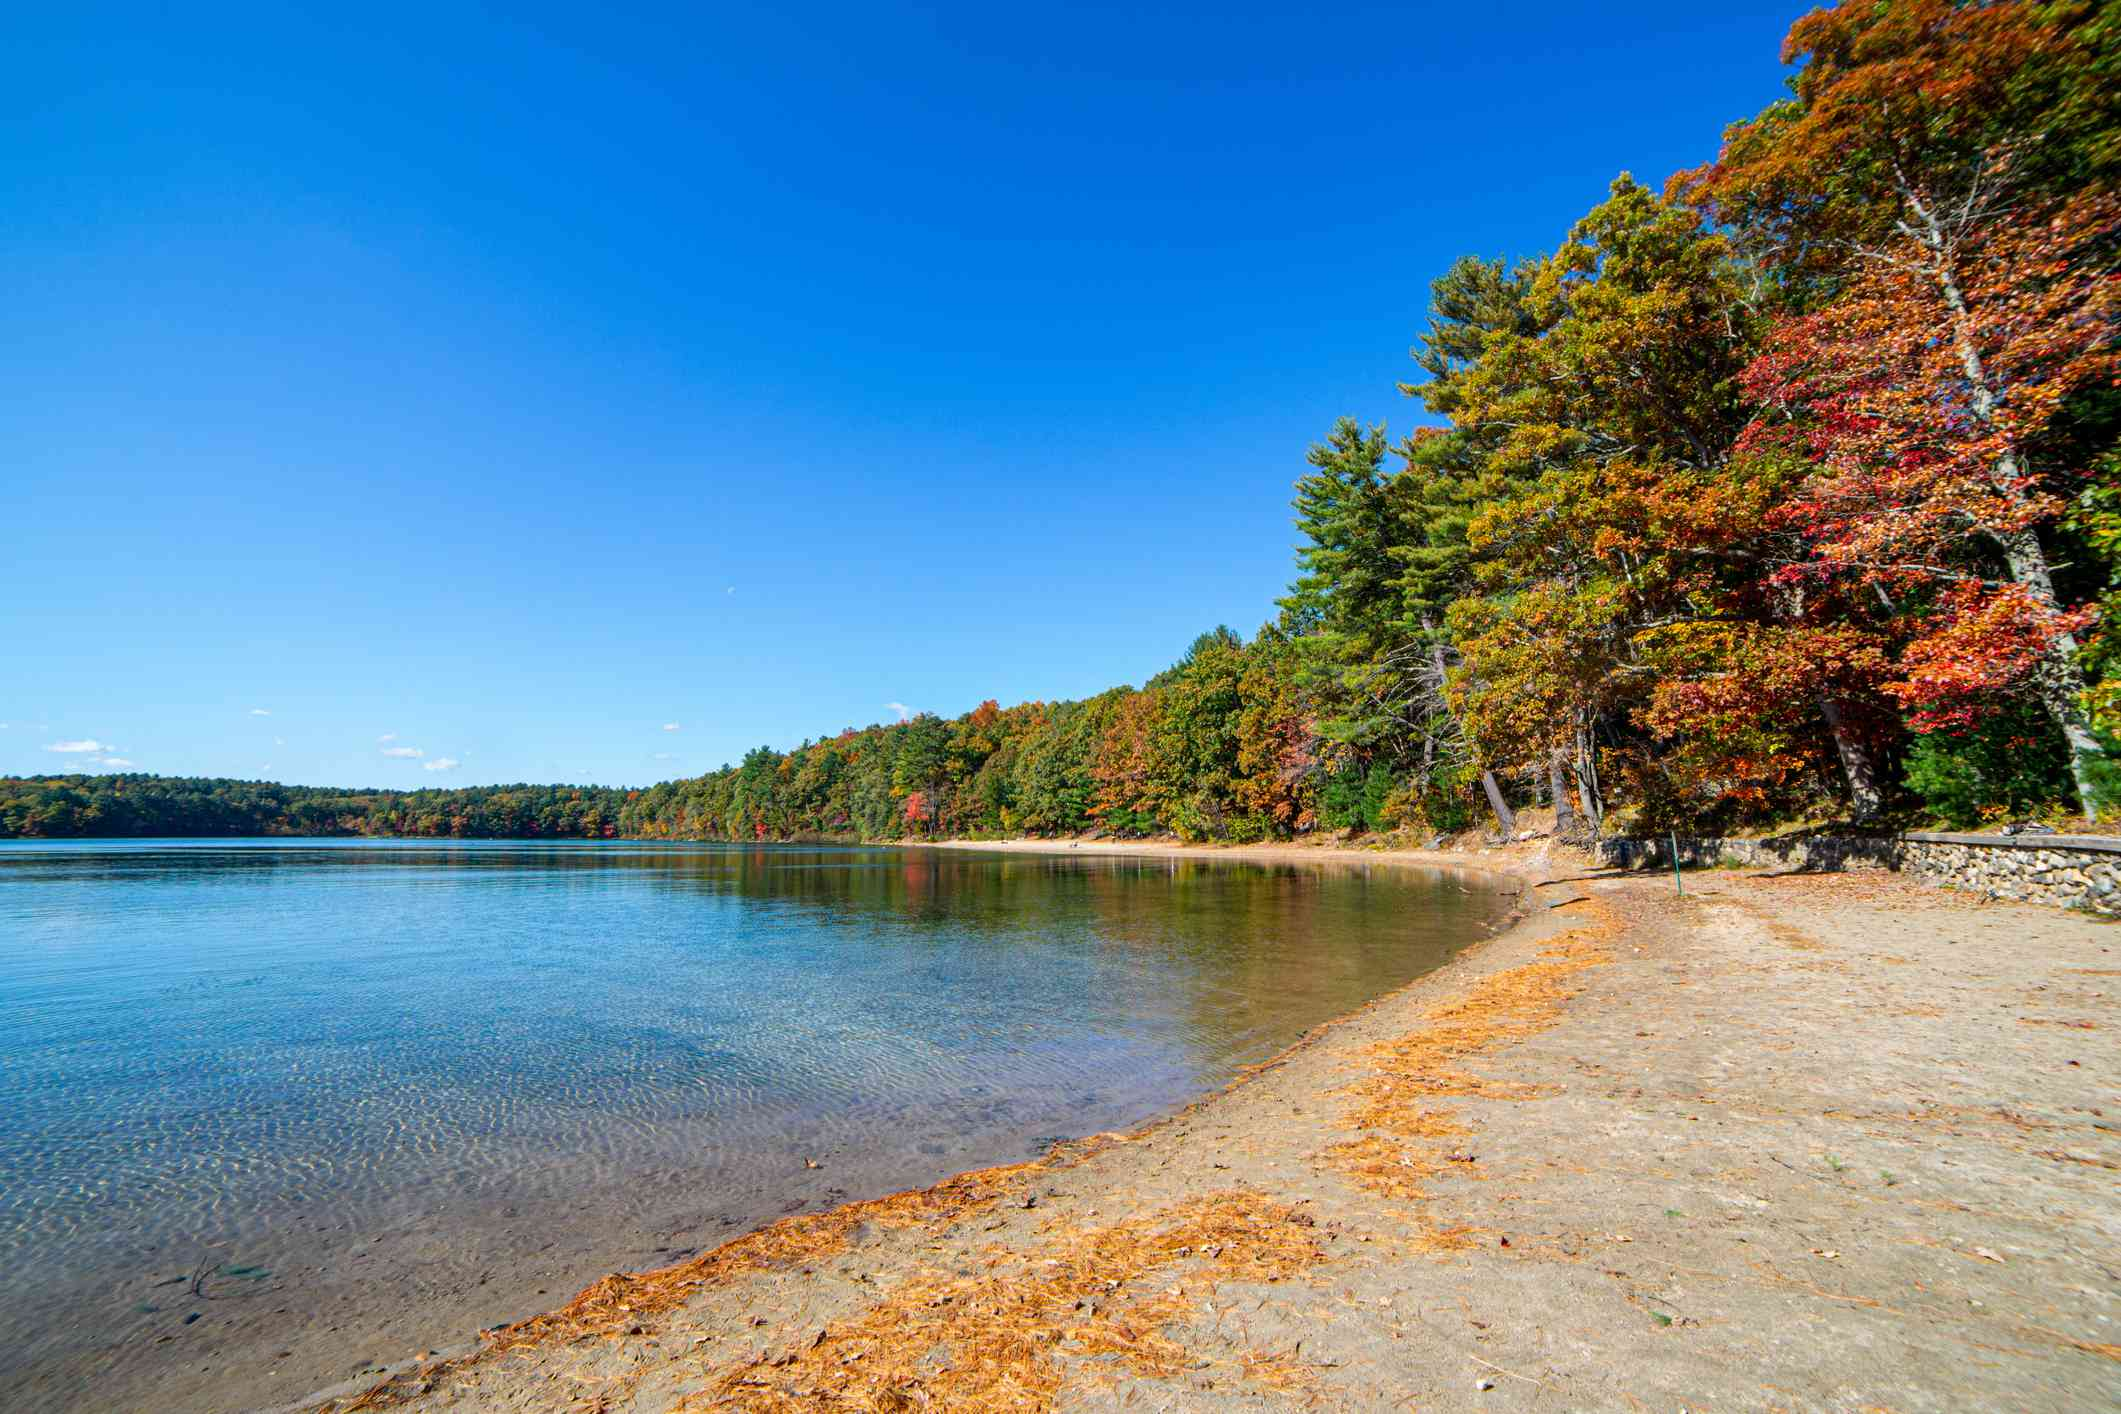 Fall foliage in Walden Pond, Concord, Massachusetts